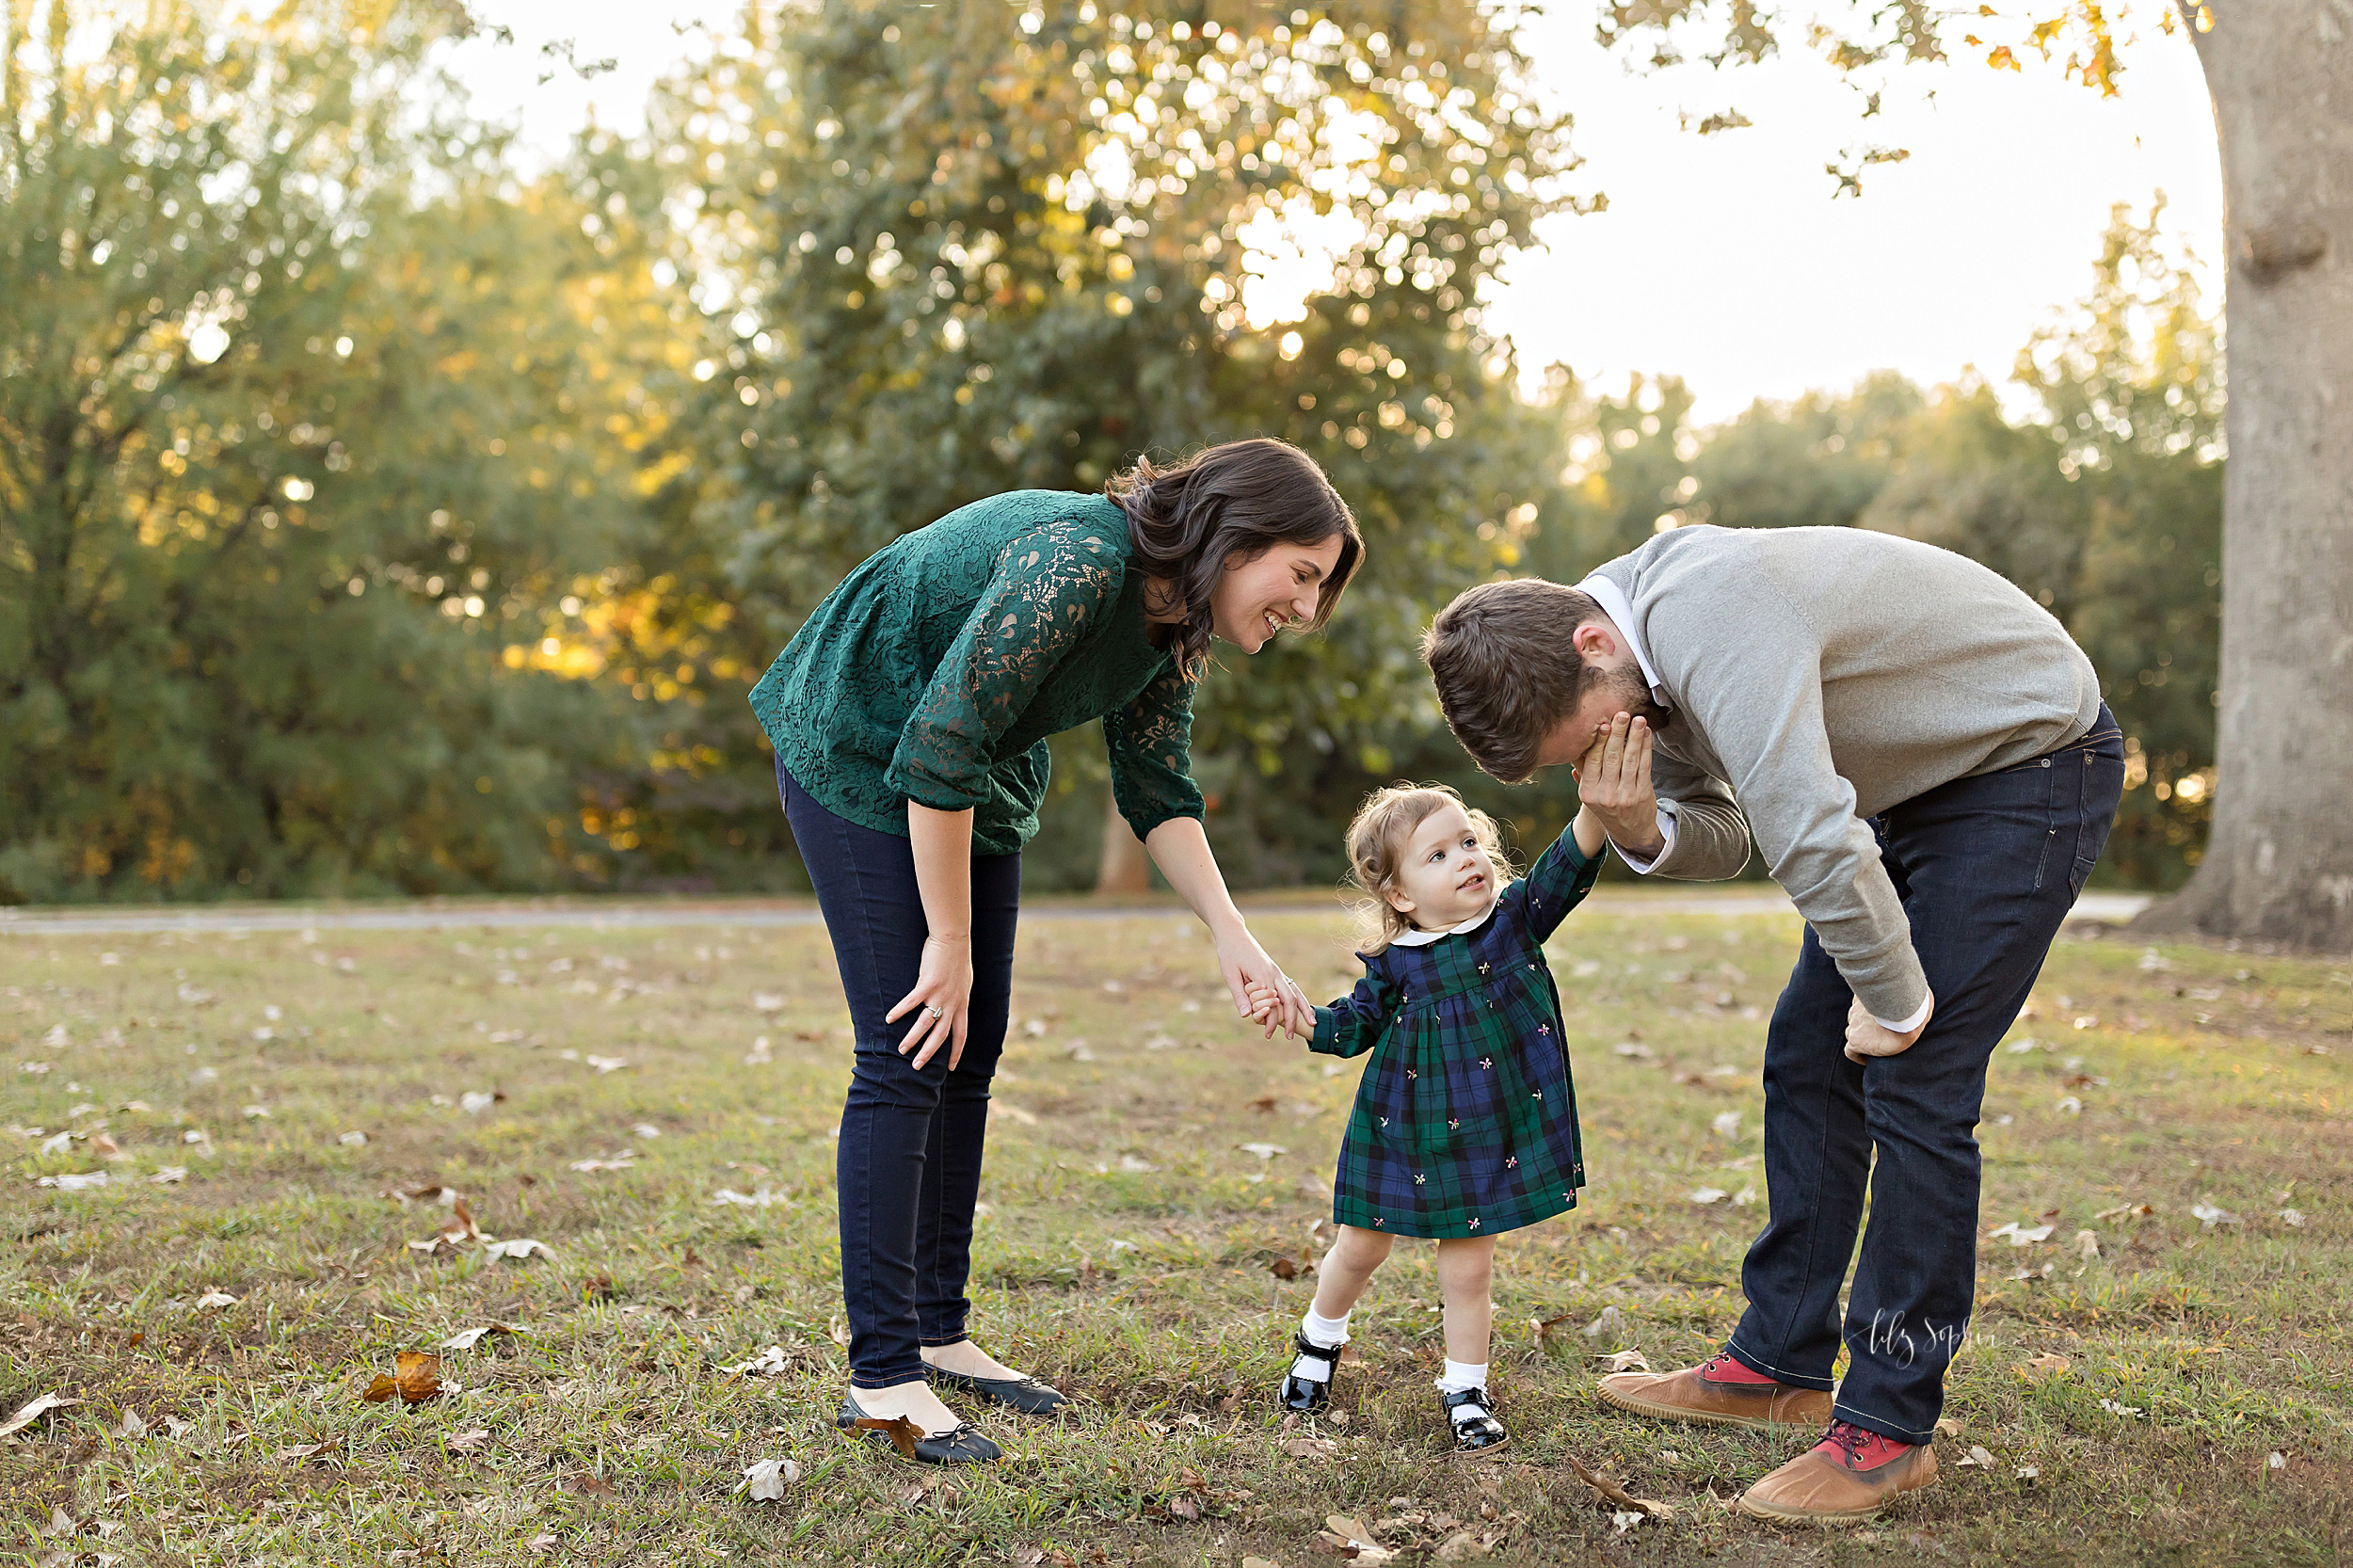 atlanta-buckhead-brookhaven-decatur-lily-sophia-photography-photographer-portraits-grant-park-intown-outdoor-family-sunset-session-toddler-baby-girl_0010.jpg